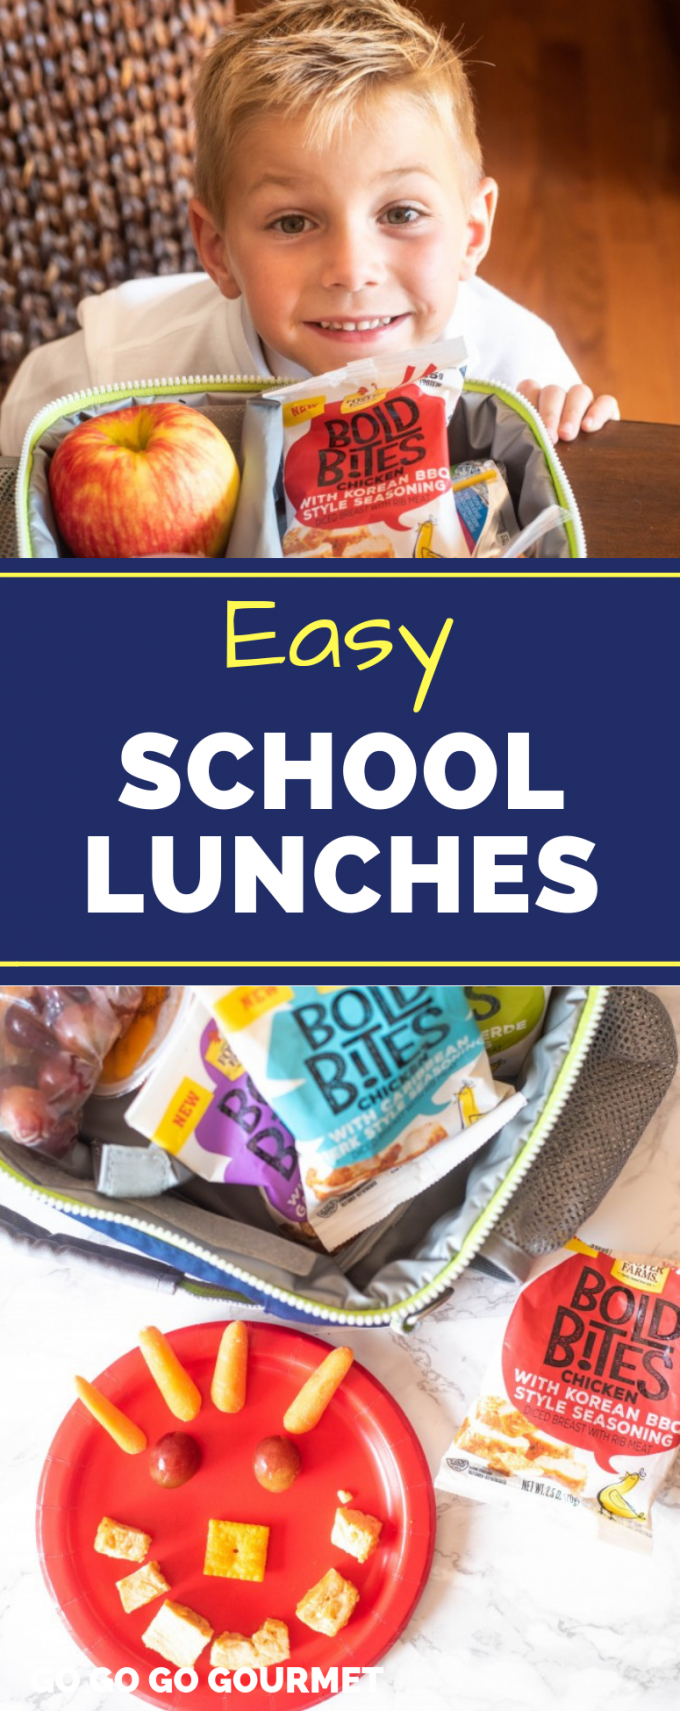 Whether you're making lunches for kids, for teens, or even for picky eaters, with the help of Bold Bites from Foster Farms lunch is made easy! These are lunches that you can make ahead when you need something quick. The best! @izea #ad #easyschoollunches #quickandeasylunches #lunchforkids #gogogogourmet via @gogogogourmet